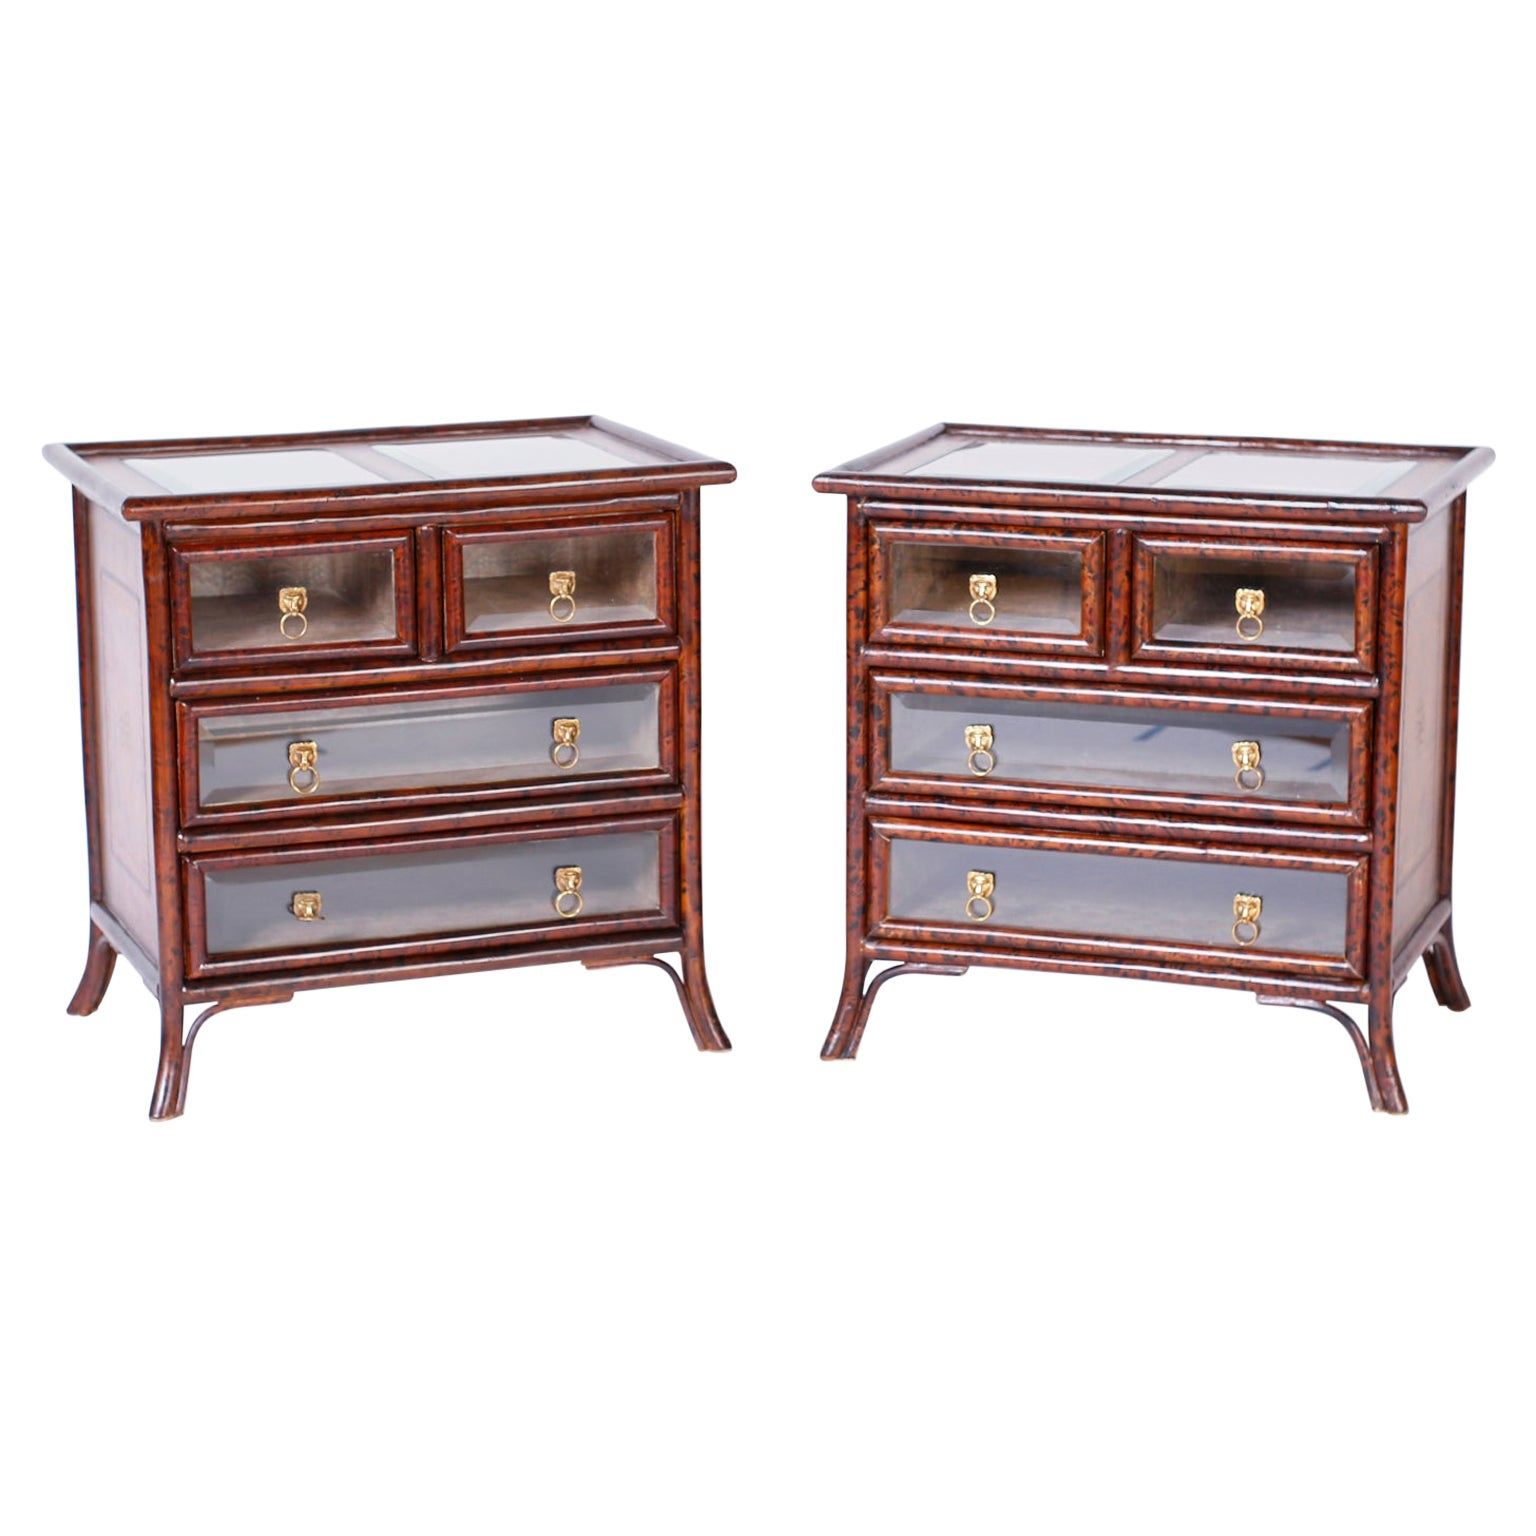 Pair of Faux Tortoise Bamboo and Leather Stands